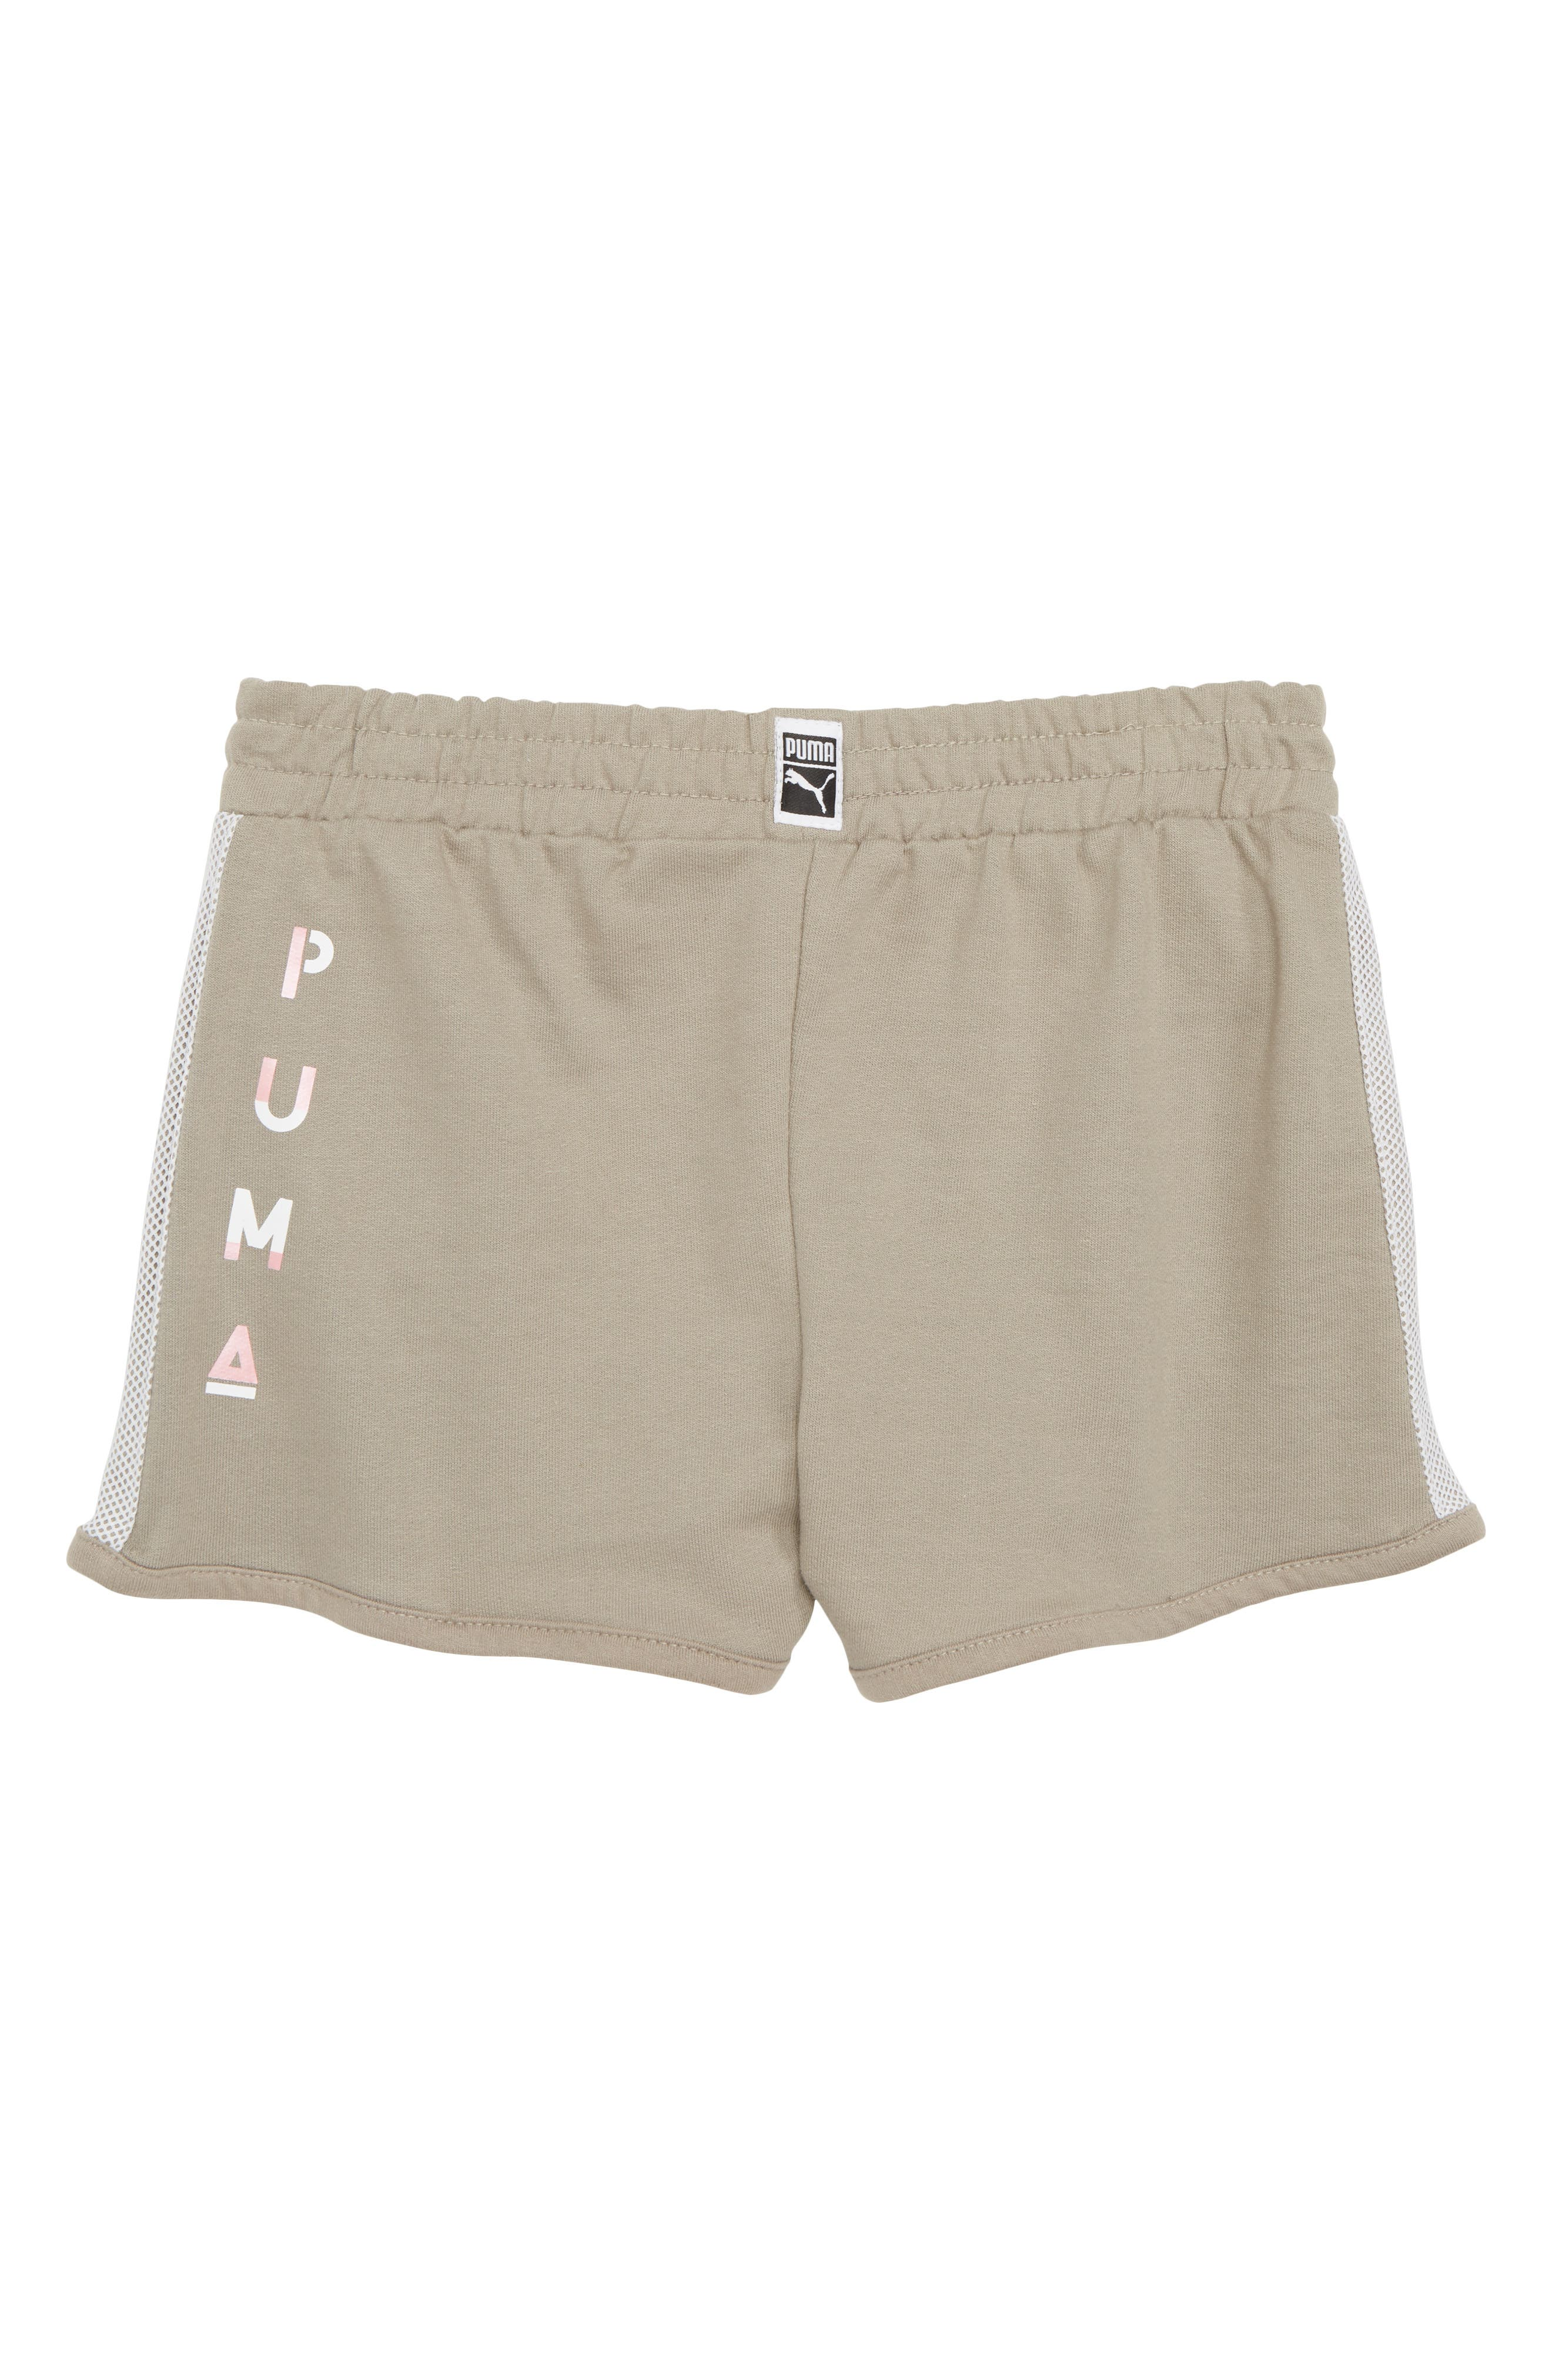 French Terry Shorts,                             Alternate thumbnail 2, color,                             255